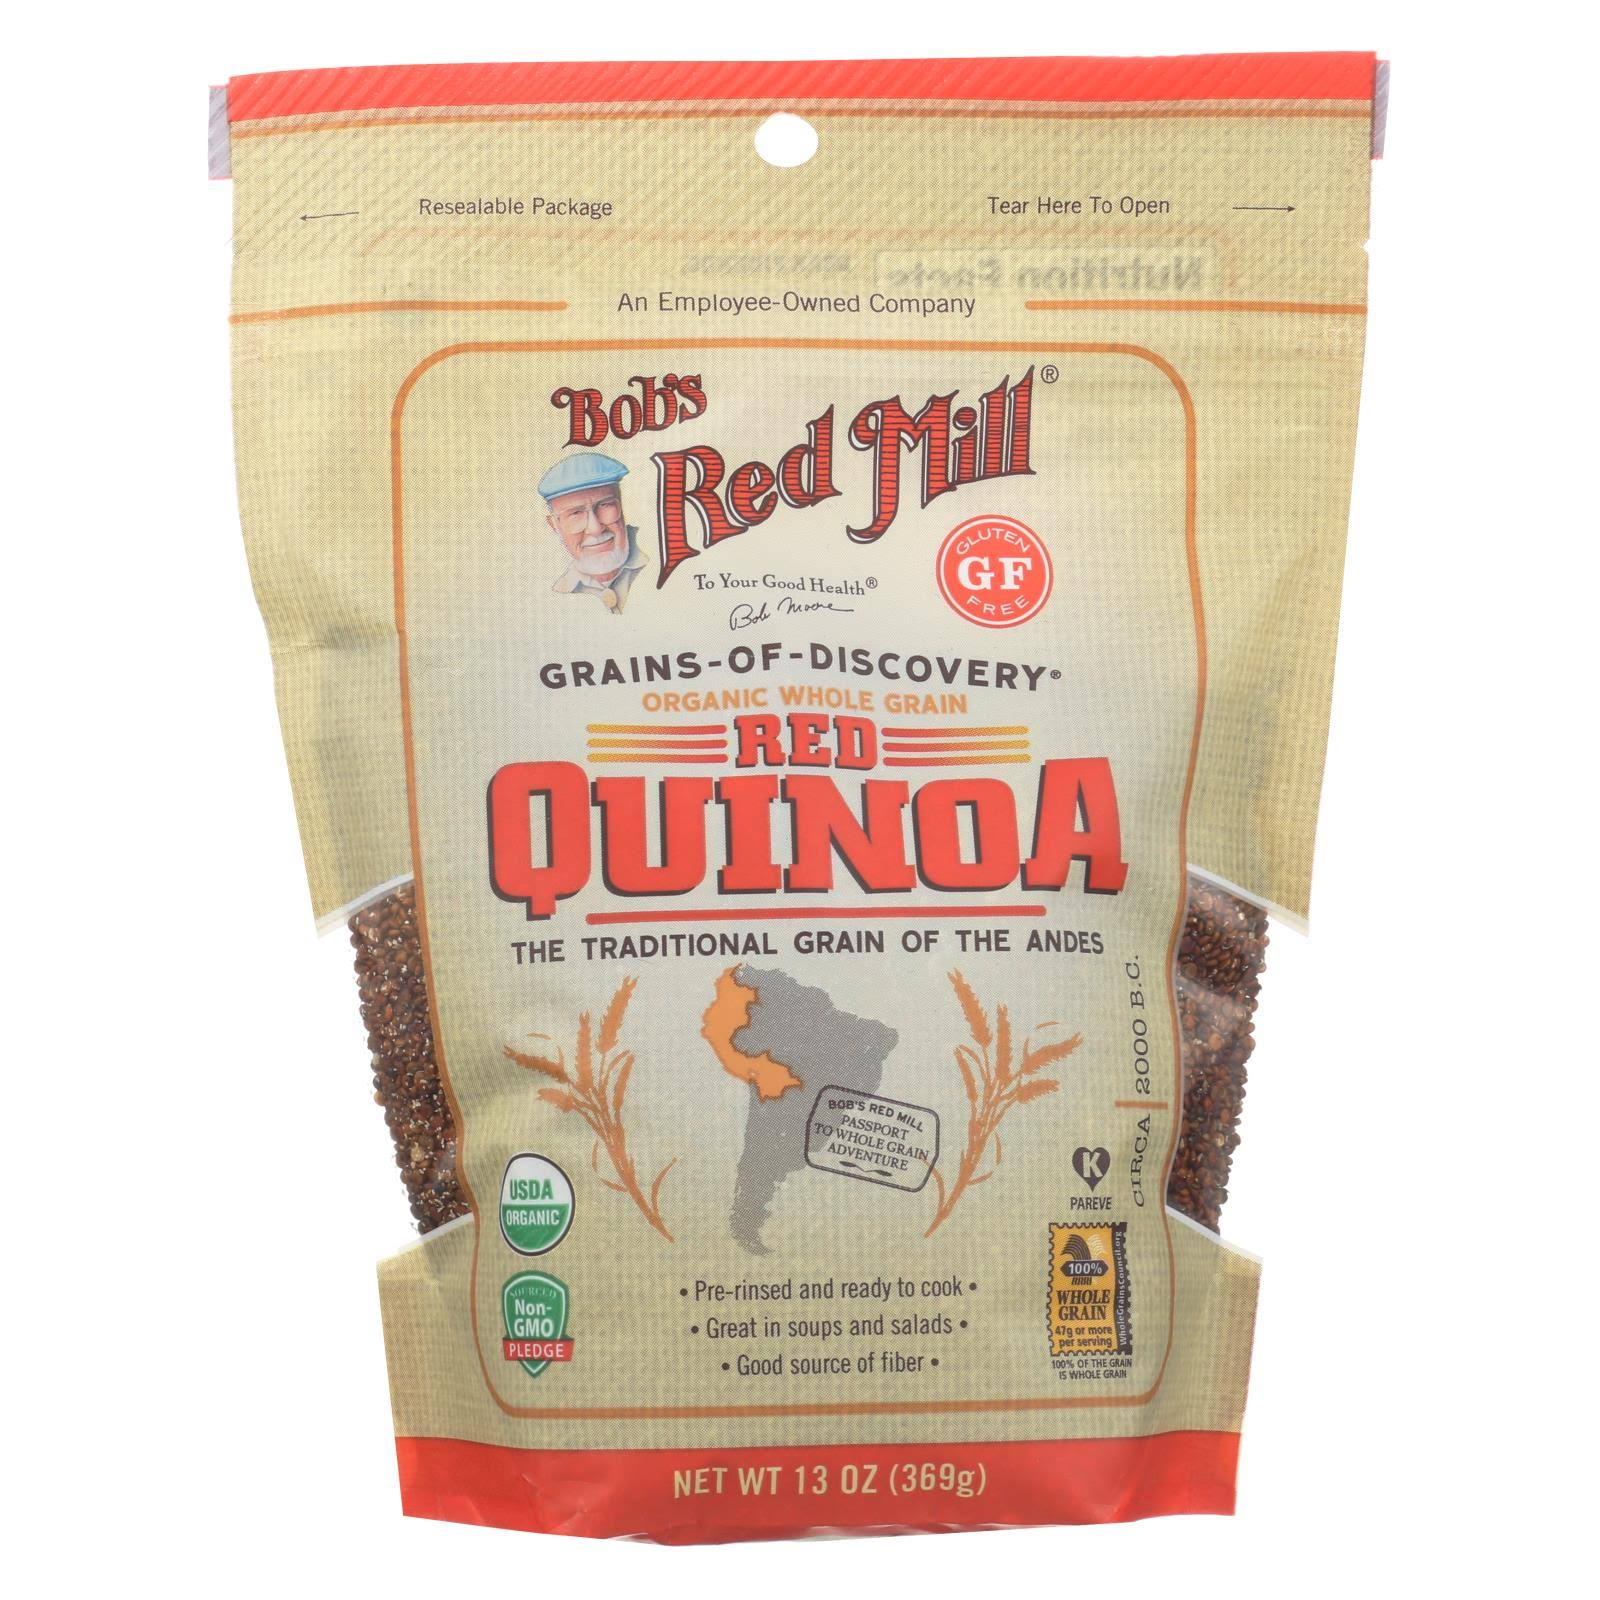 Bobs Red Mill Quinoa, Red, Organic, Whole Grain - 13 oz